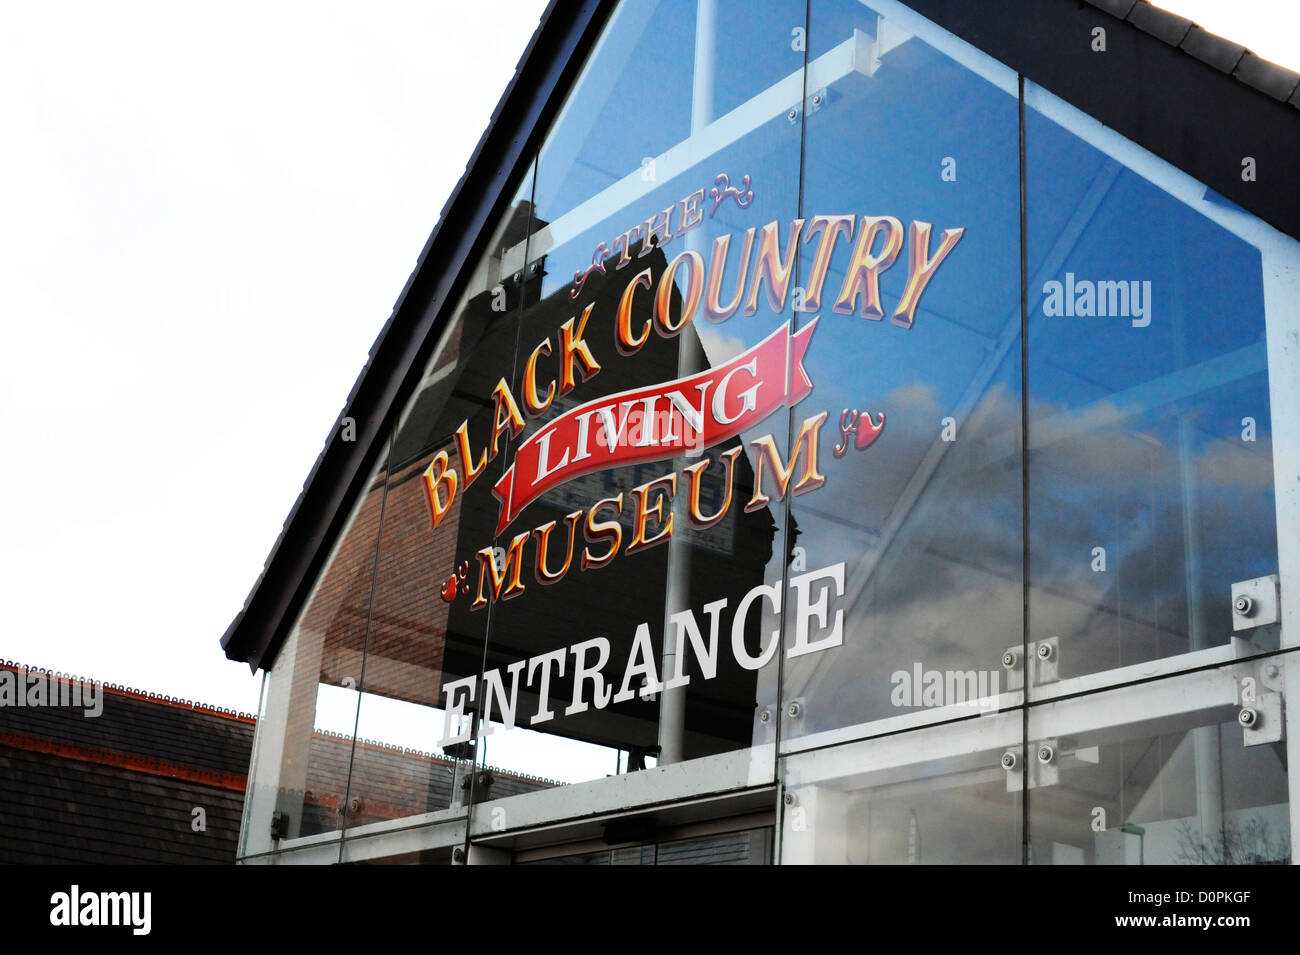 Black Country Living Museum, Dudley. - Stock Image